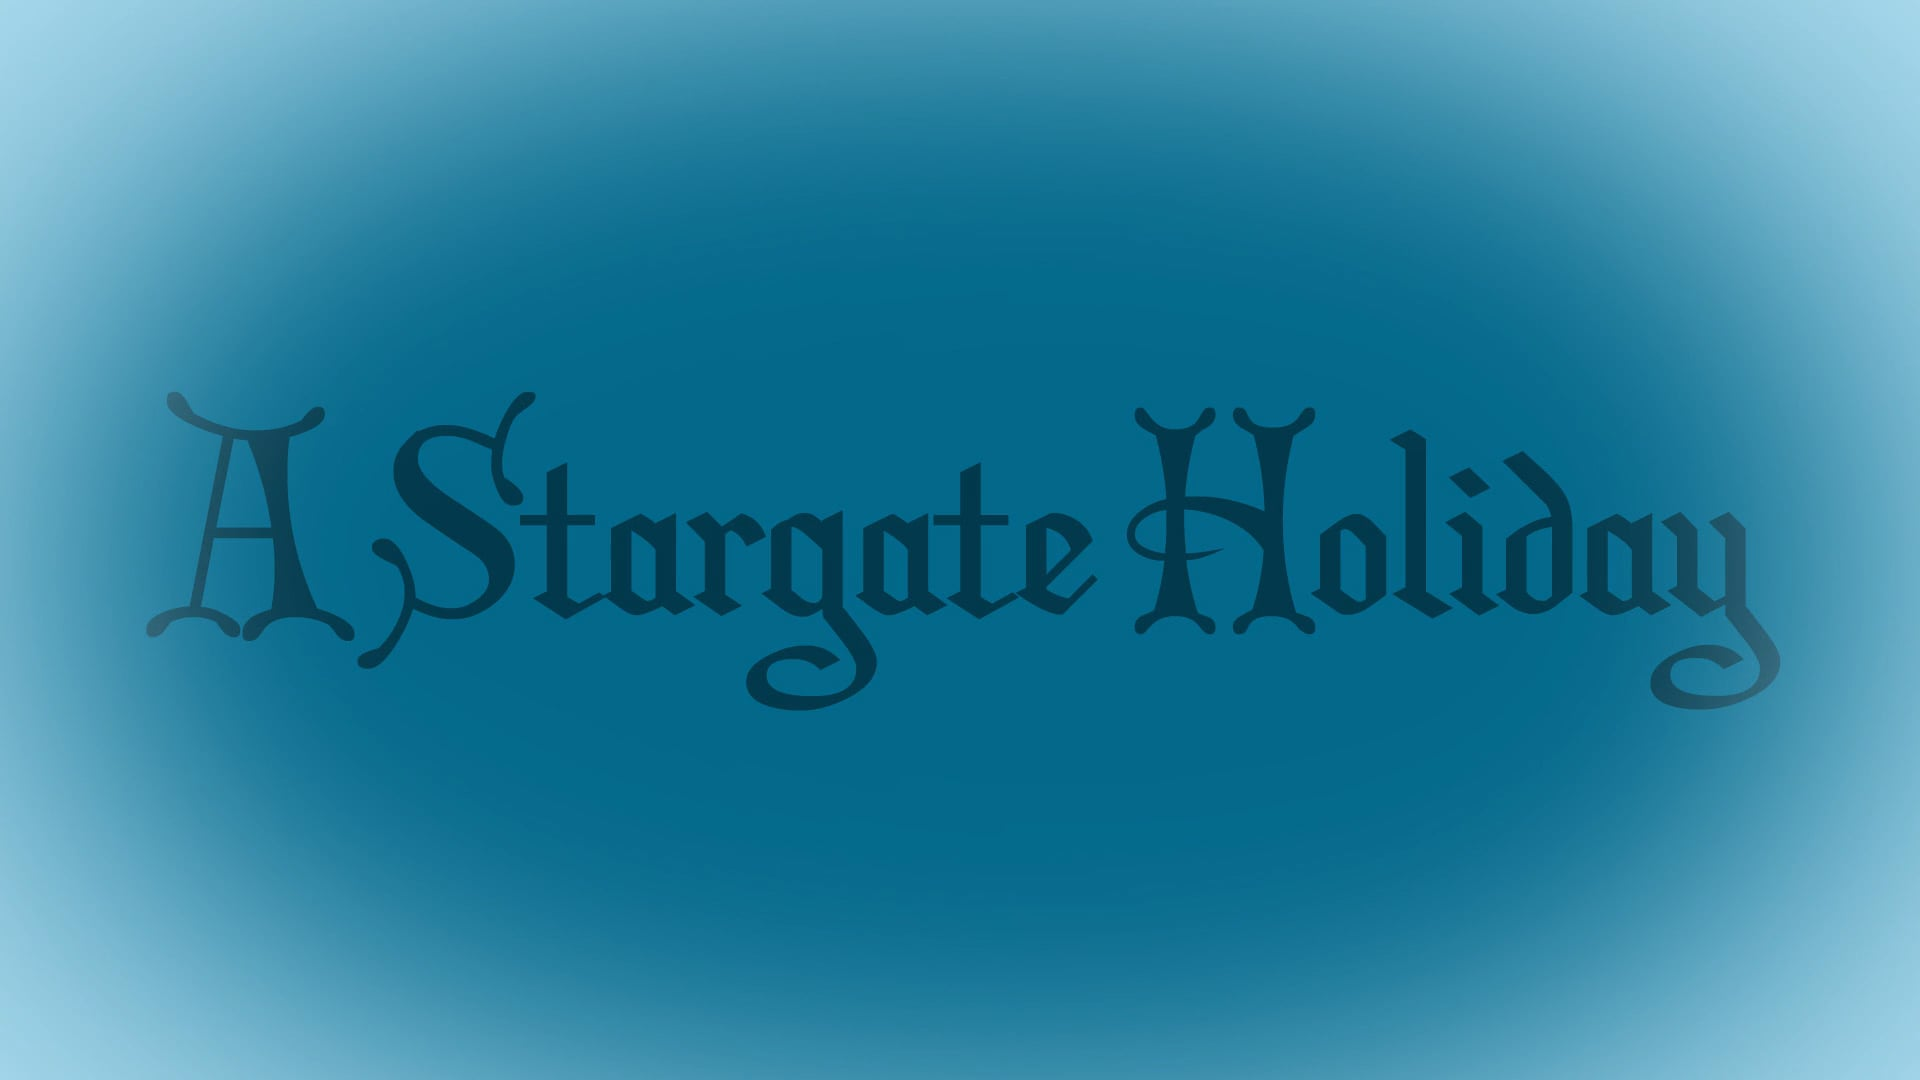 A Stargate Holiday